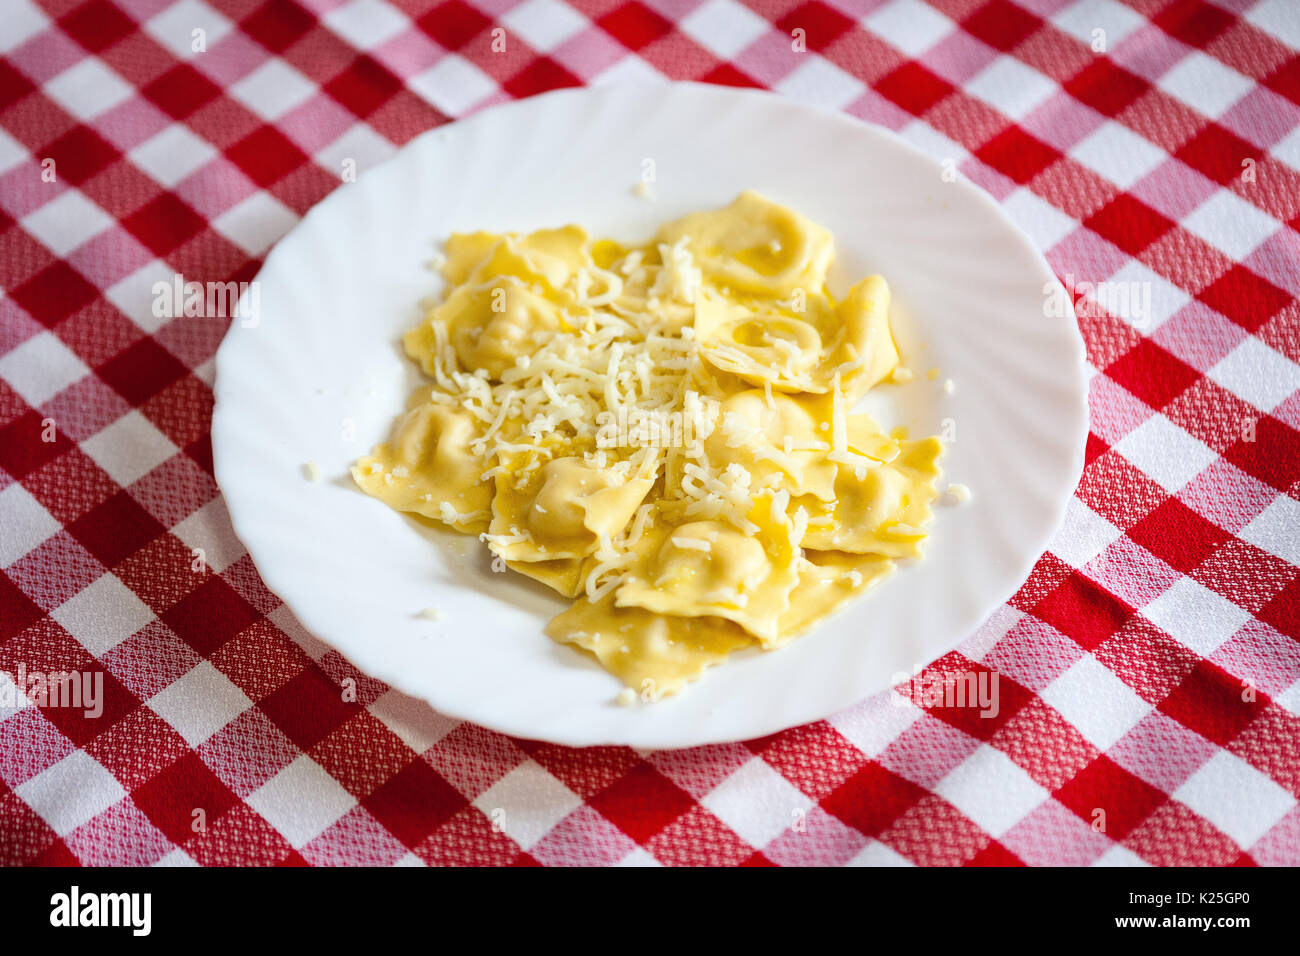 Tortellini with chese with red and white tablecloth - Stock Image